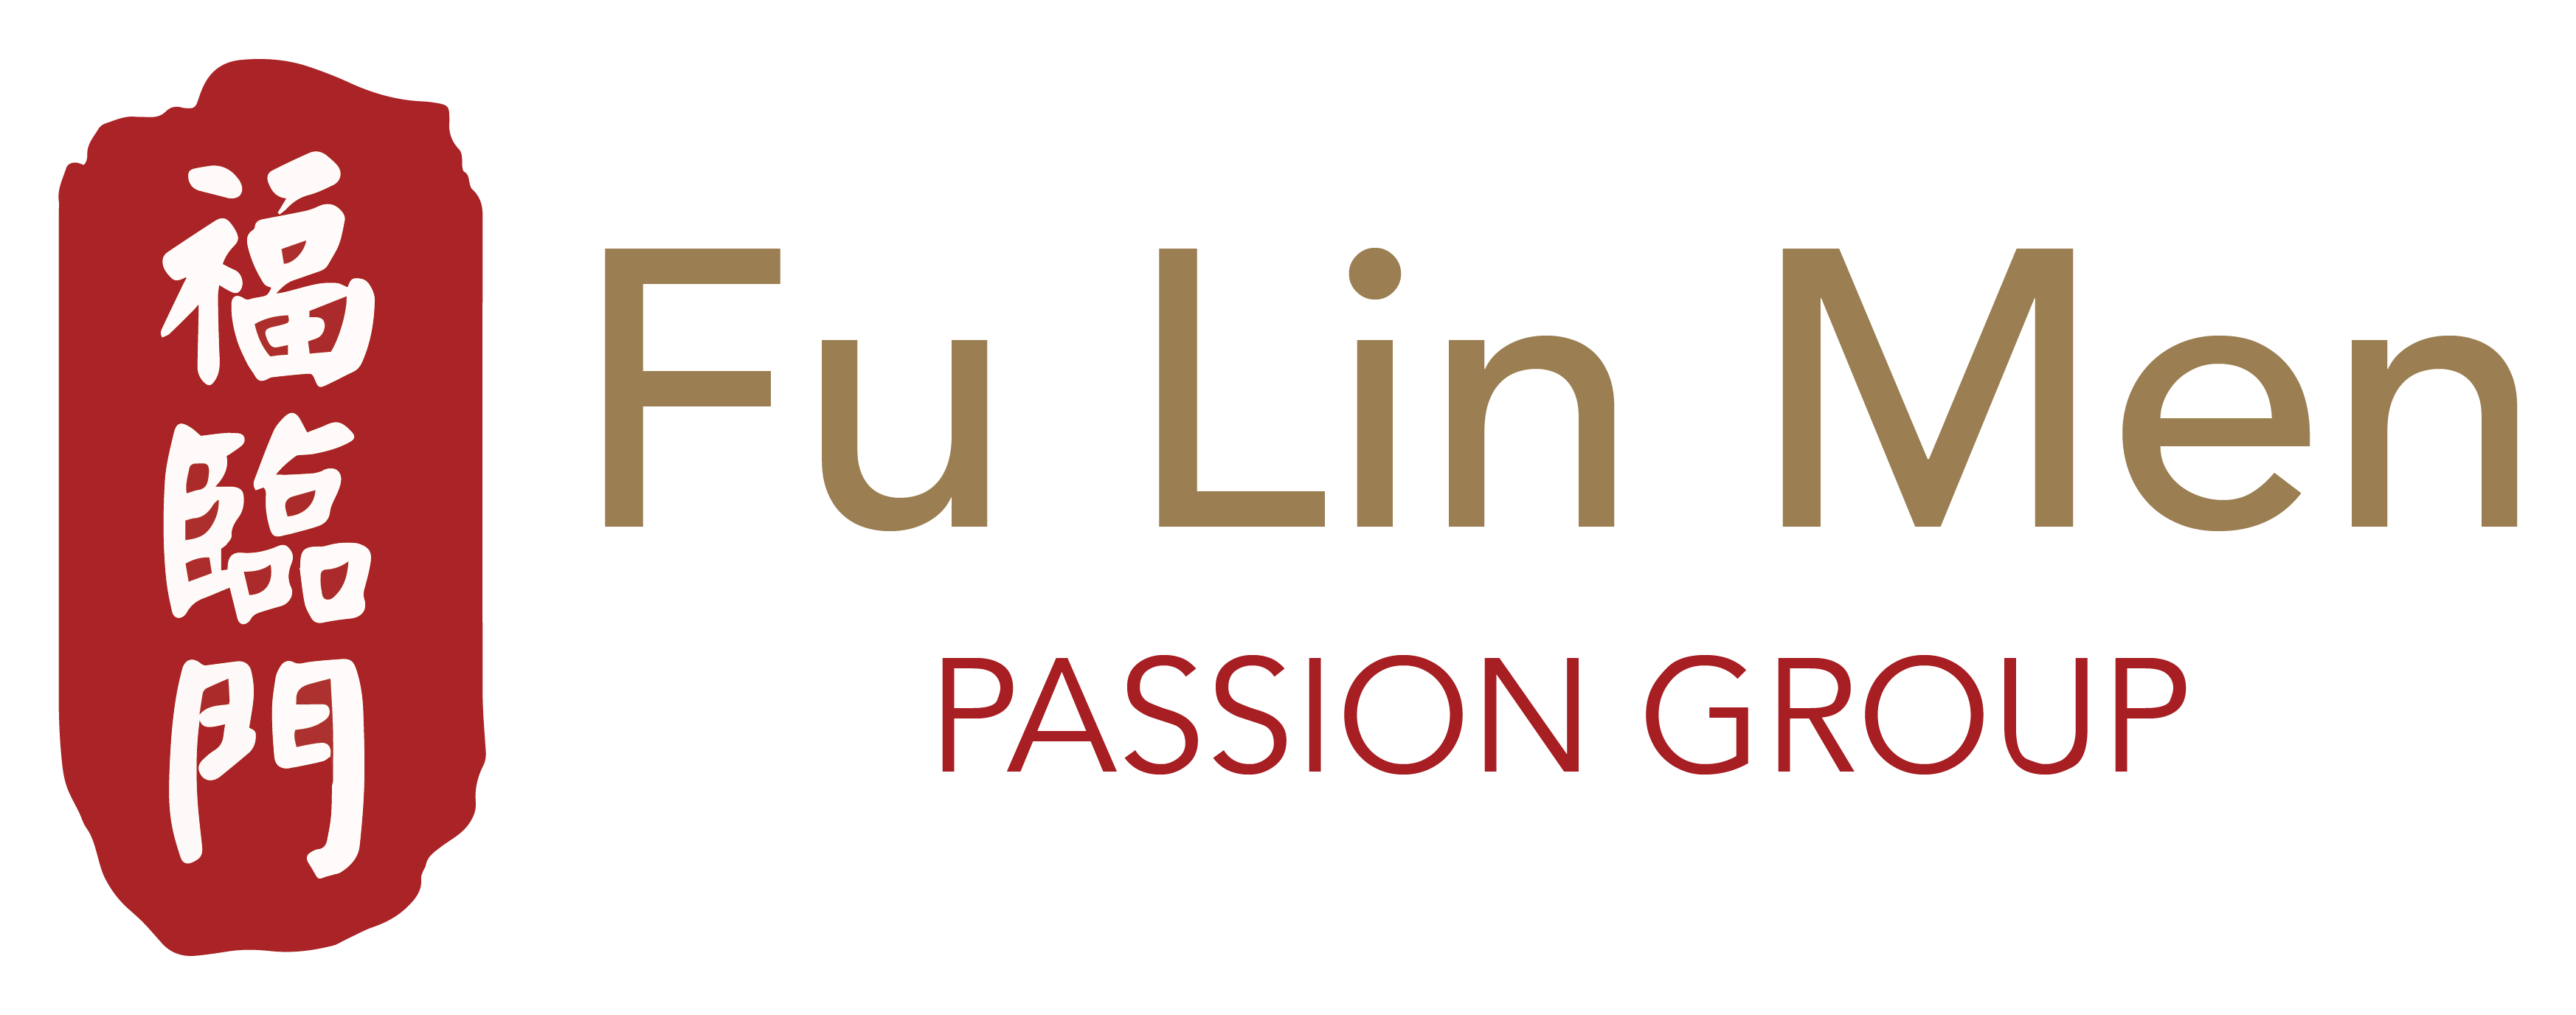 FLM-Passion-Group